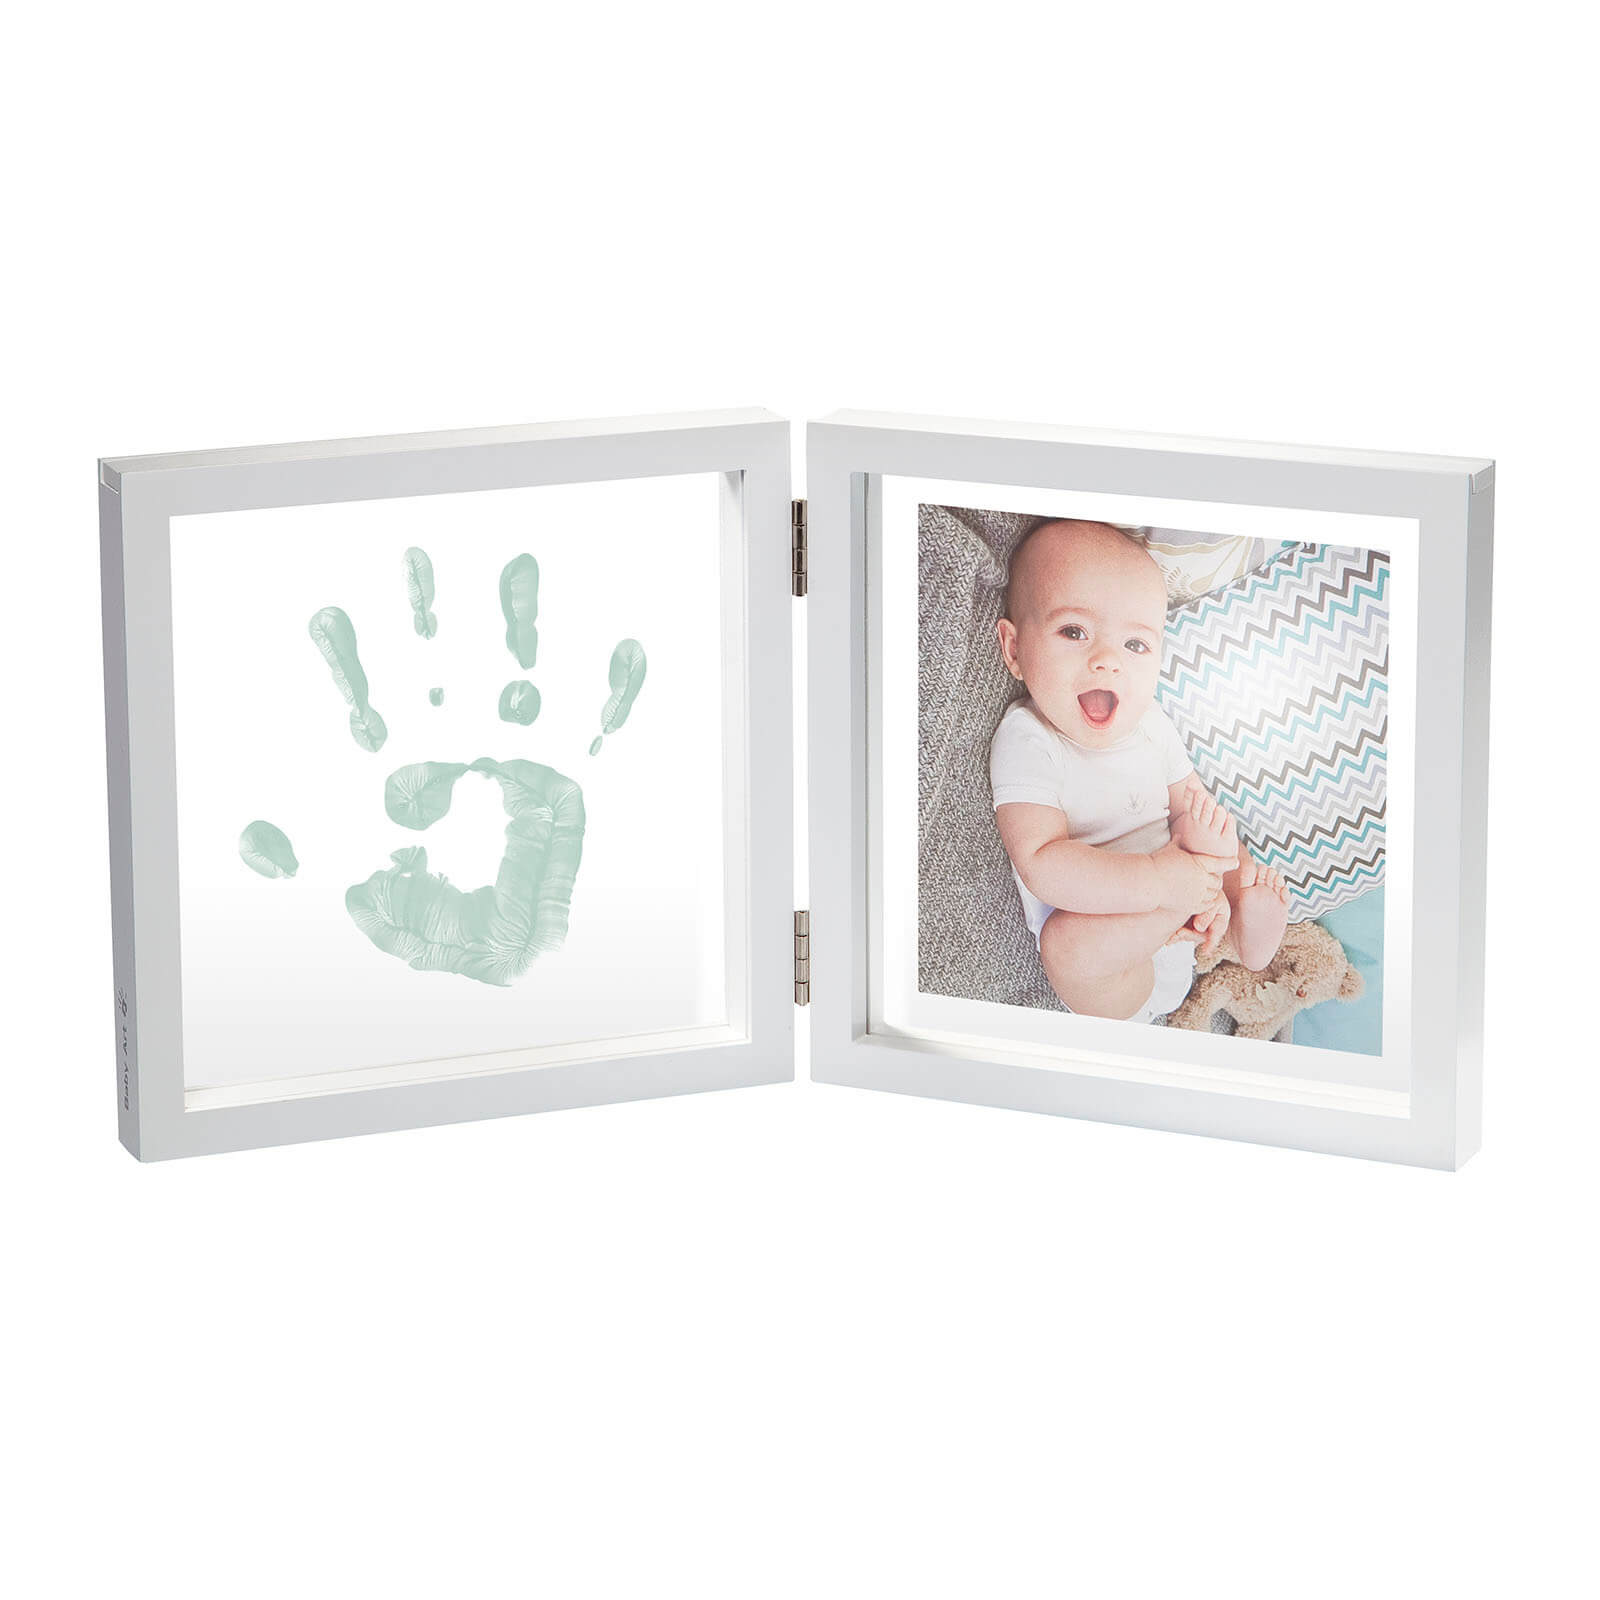 MY Baby Style Transparent Paint - Baby Art Ref 3601095700